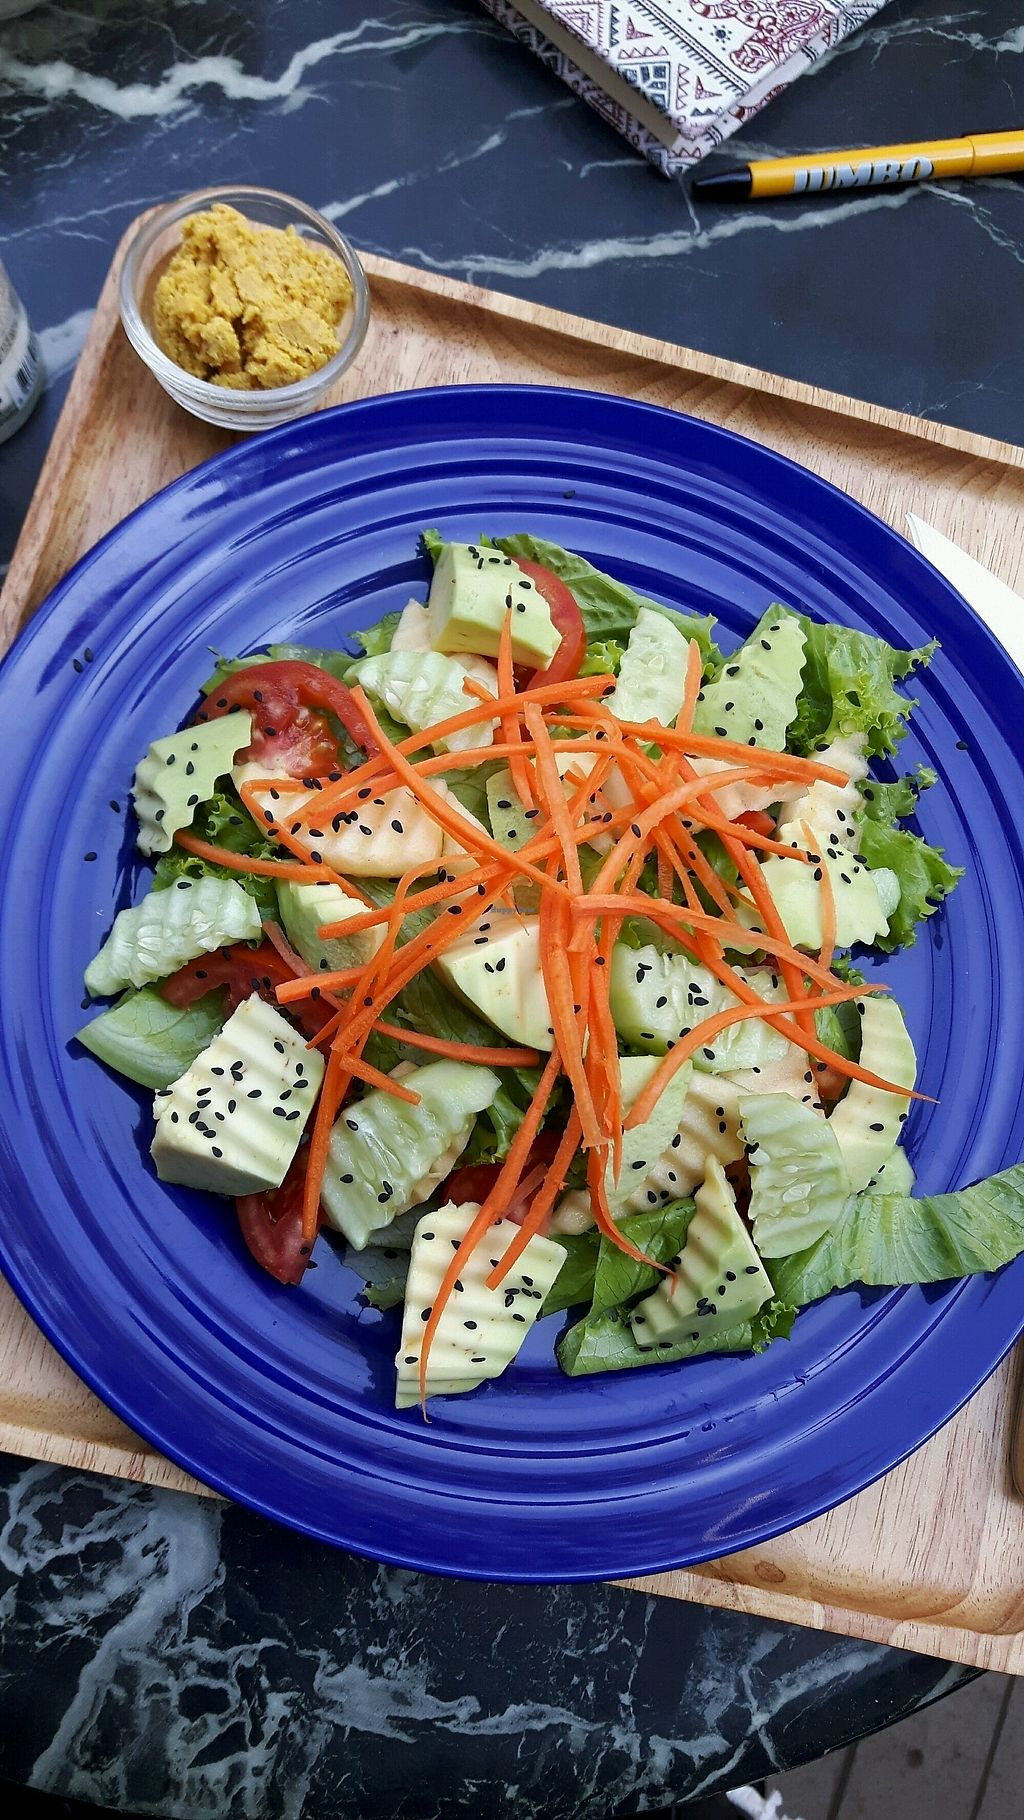 """Photo of Coco&Co.  by <a href=""""/members/profile/CharityBosua"""">CharityBosua</a> <br/>Avocado salad with hummus. No toast because bread isn't vegan <br/> January 13, 2018  - <a href='/contact/abuse/image/77059/346032'>Report</a>"""